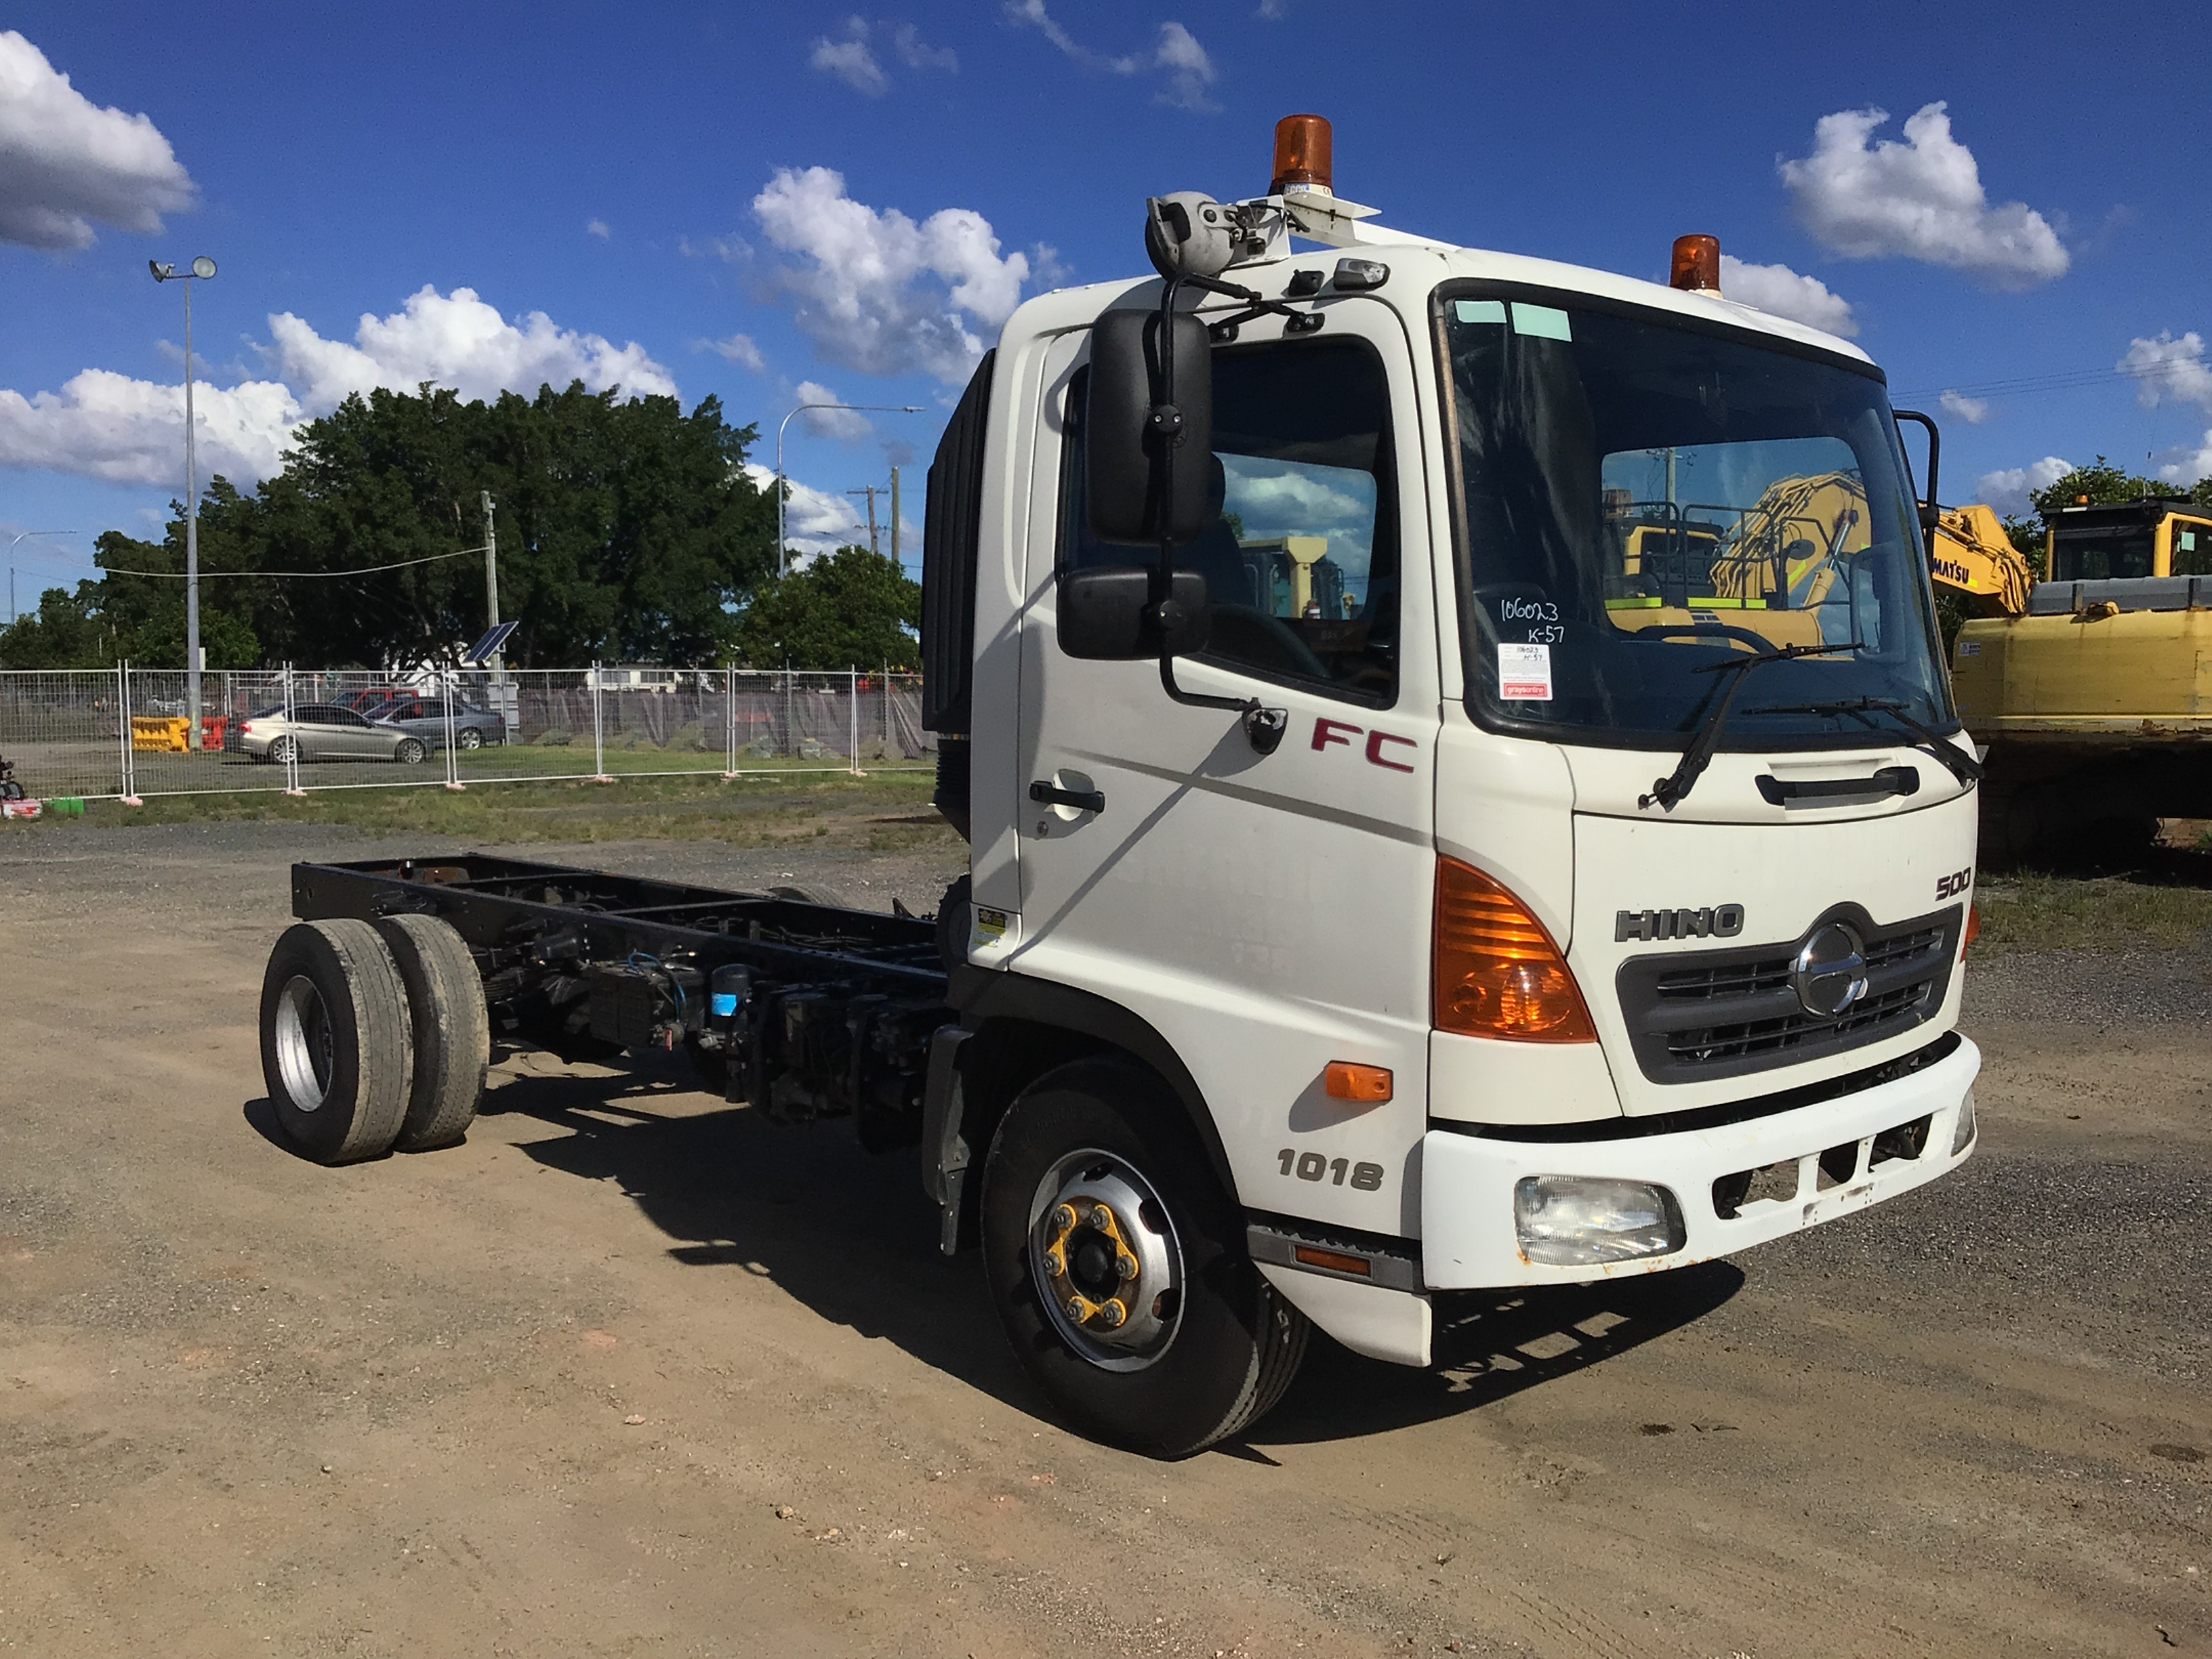 2009 Hino FC4J 4 x 2 Cab Chassis Truck